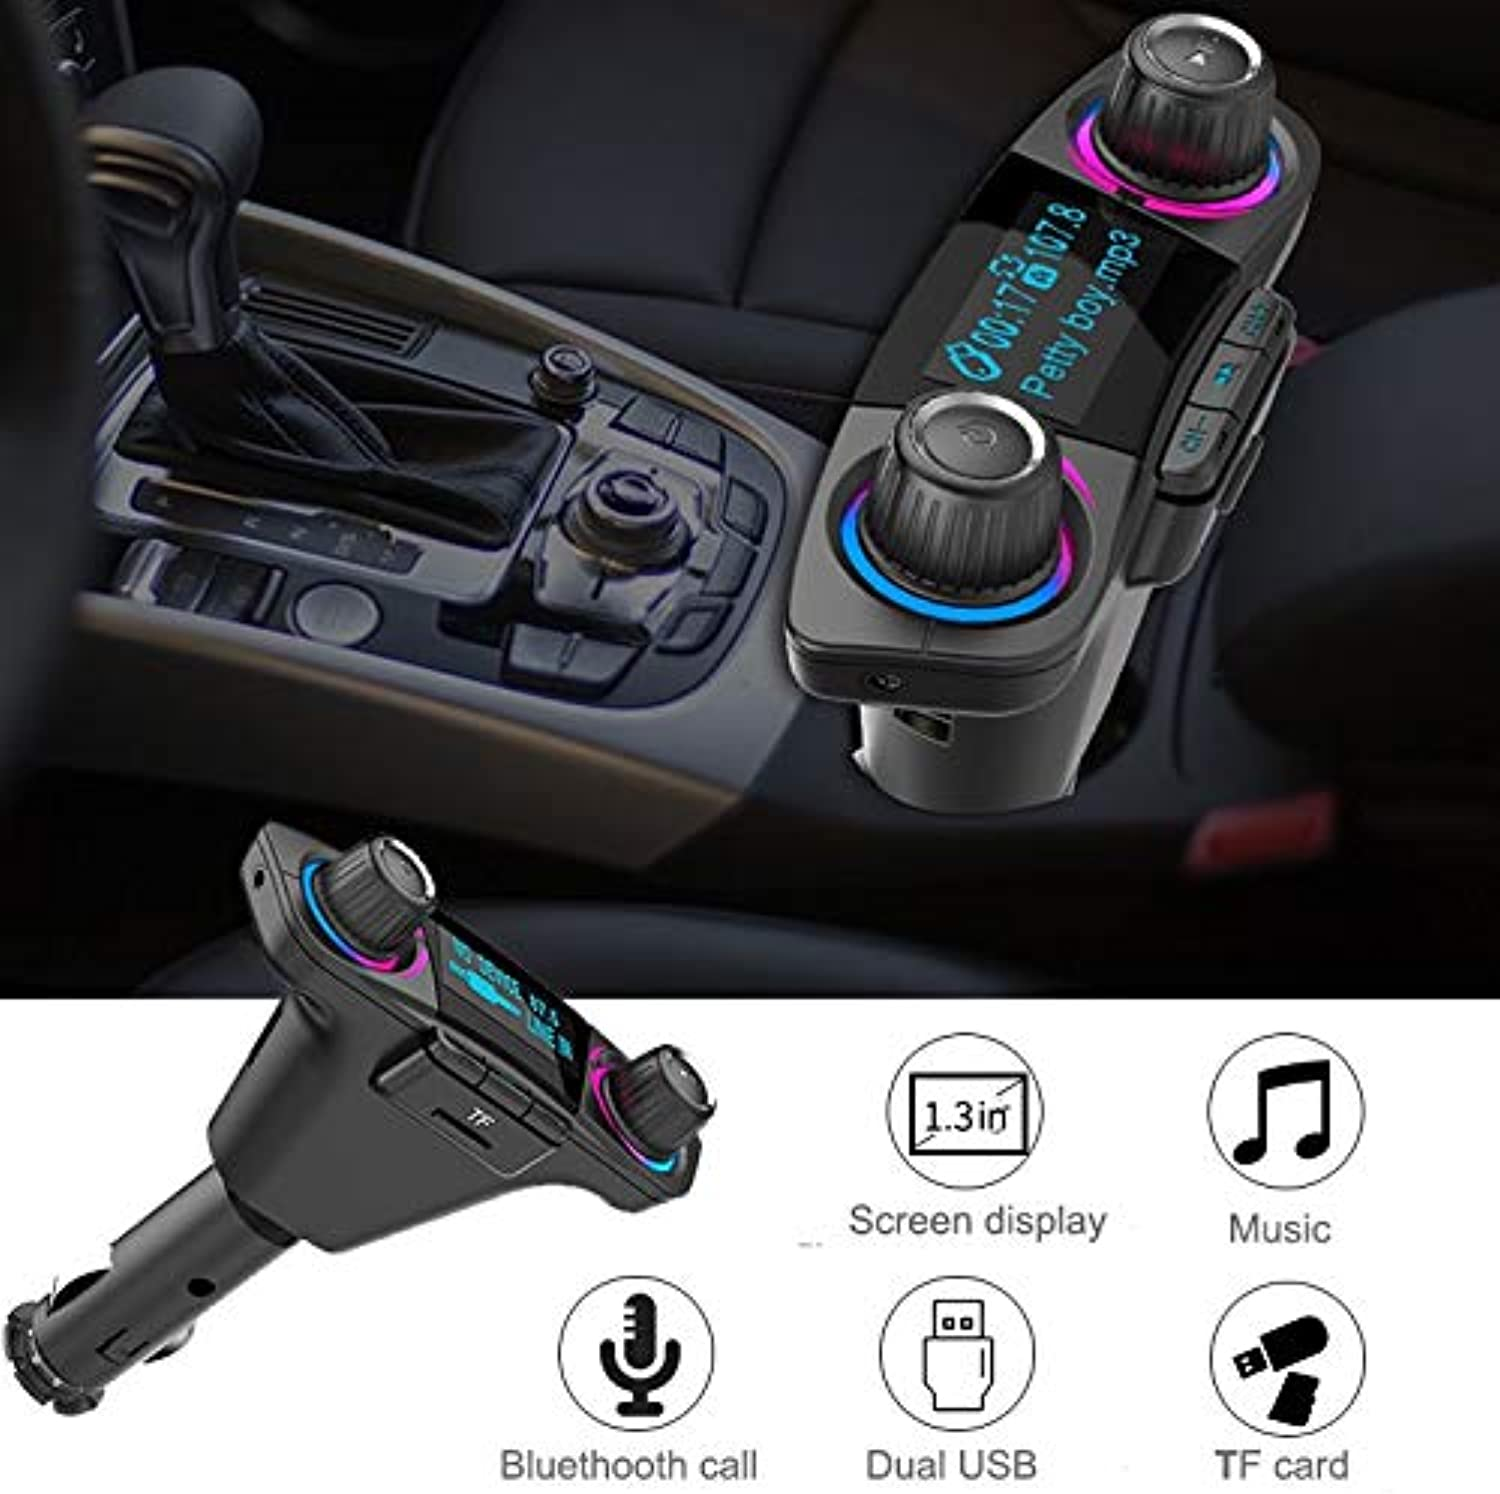 Car Audio blueeetooth MP3 Player Dual USB FM Modulator Transmitter Music LED Display Wireless Phone Handsfree Charger Stereo Auto